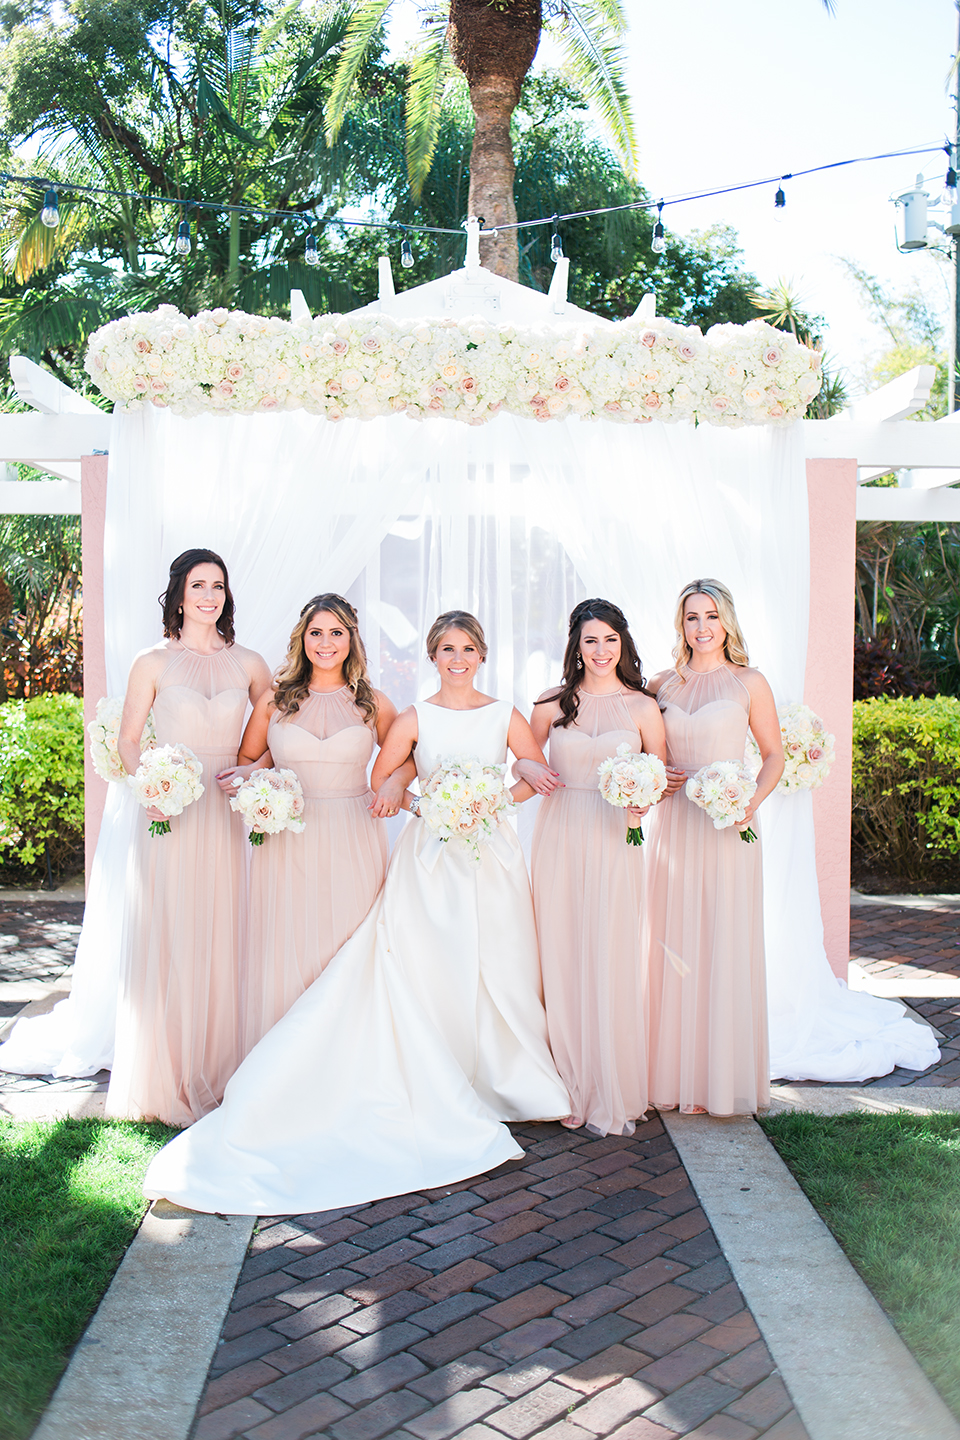 Bride with her bridesmaids on her wedding day at The Vinoy in St. Pete, Florida | Debra Eby Photography Co.